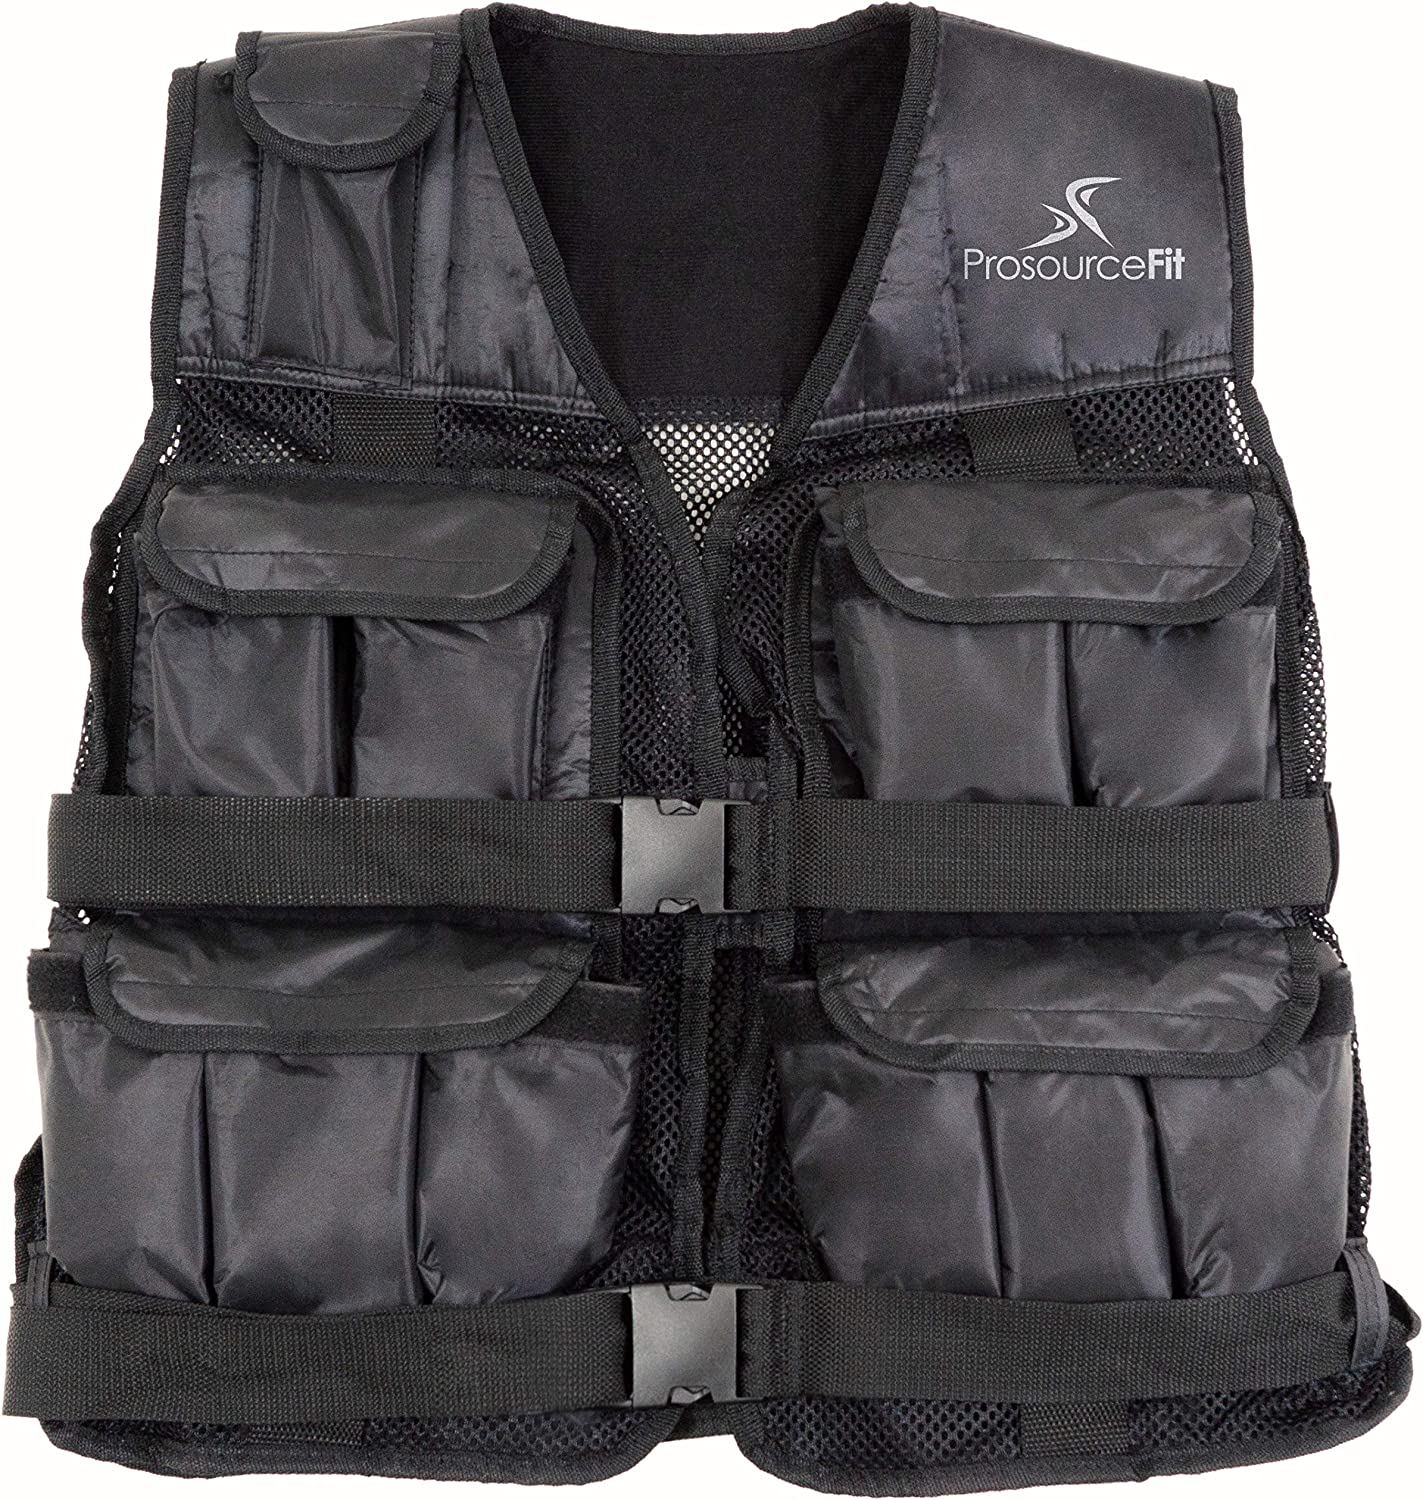 Prosource Fit 20lb Weighted Unisex Workout Vest Training Fitness 20 pounds lb Adjustable Weight